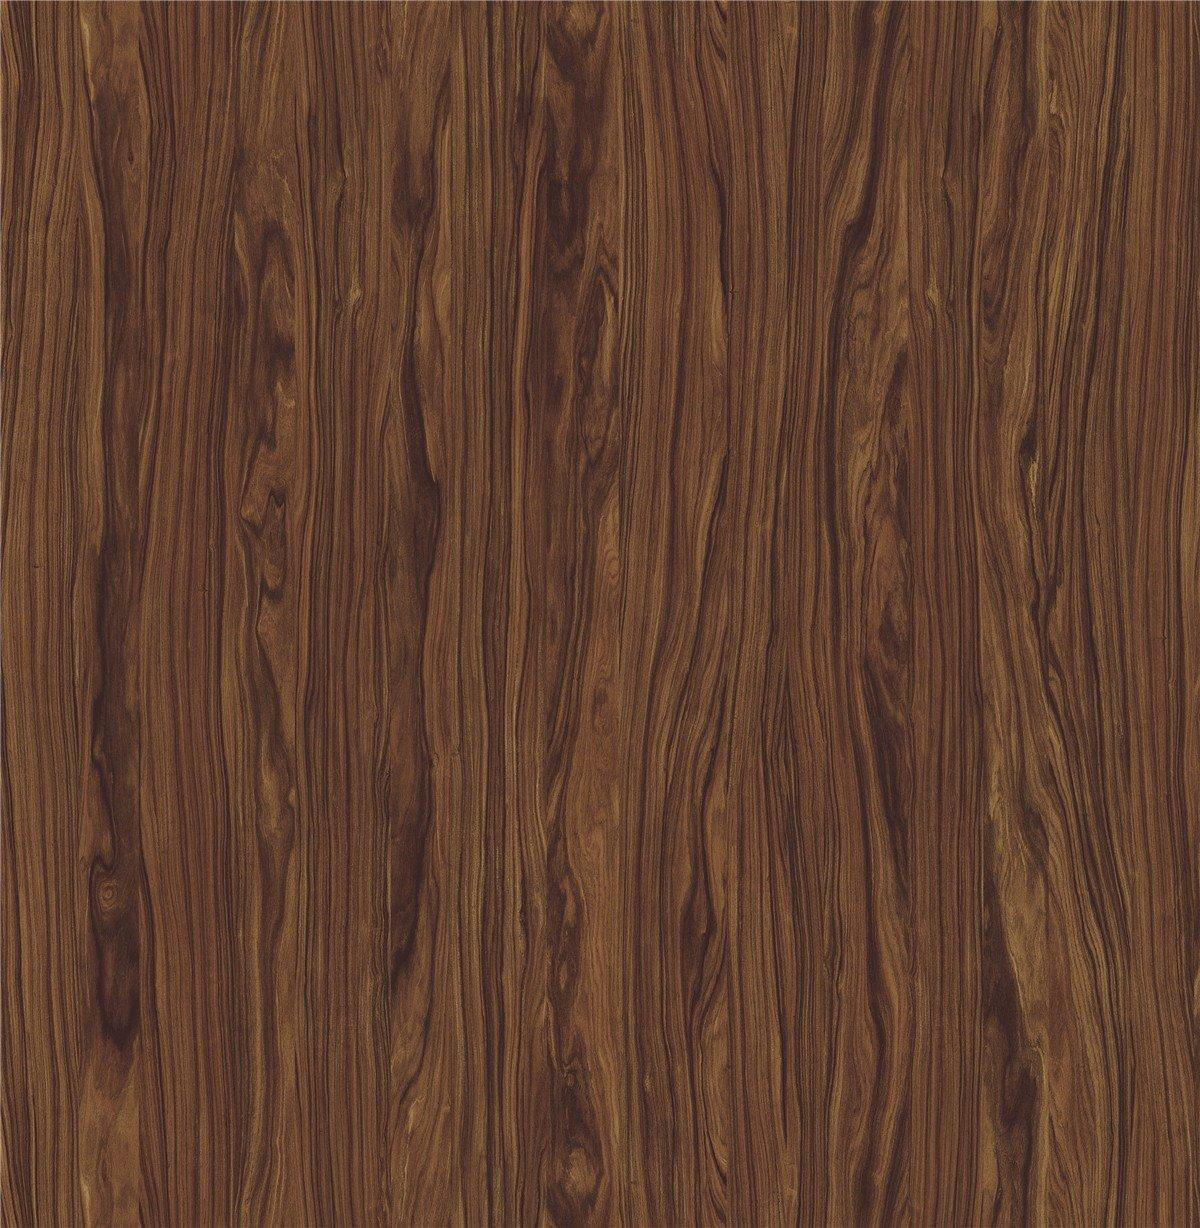 I.DECOR sturdy where to buy contact paper for furniture virginia for study room-1